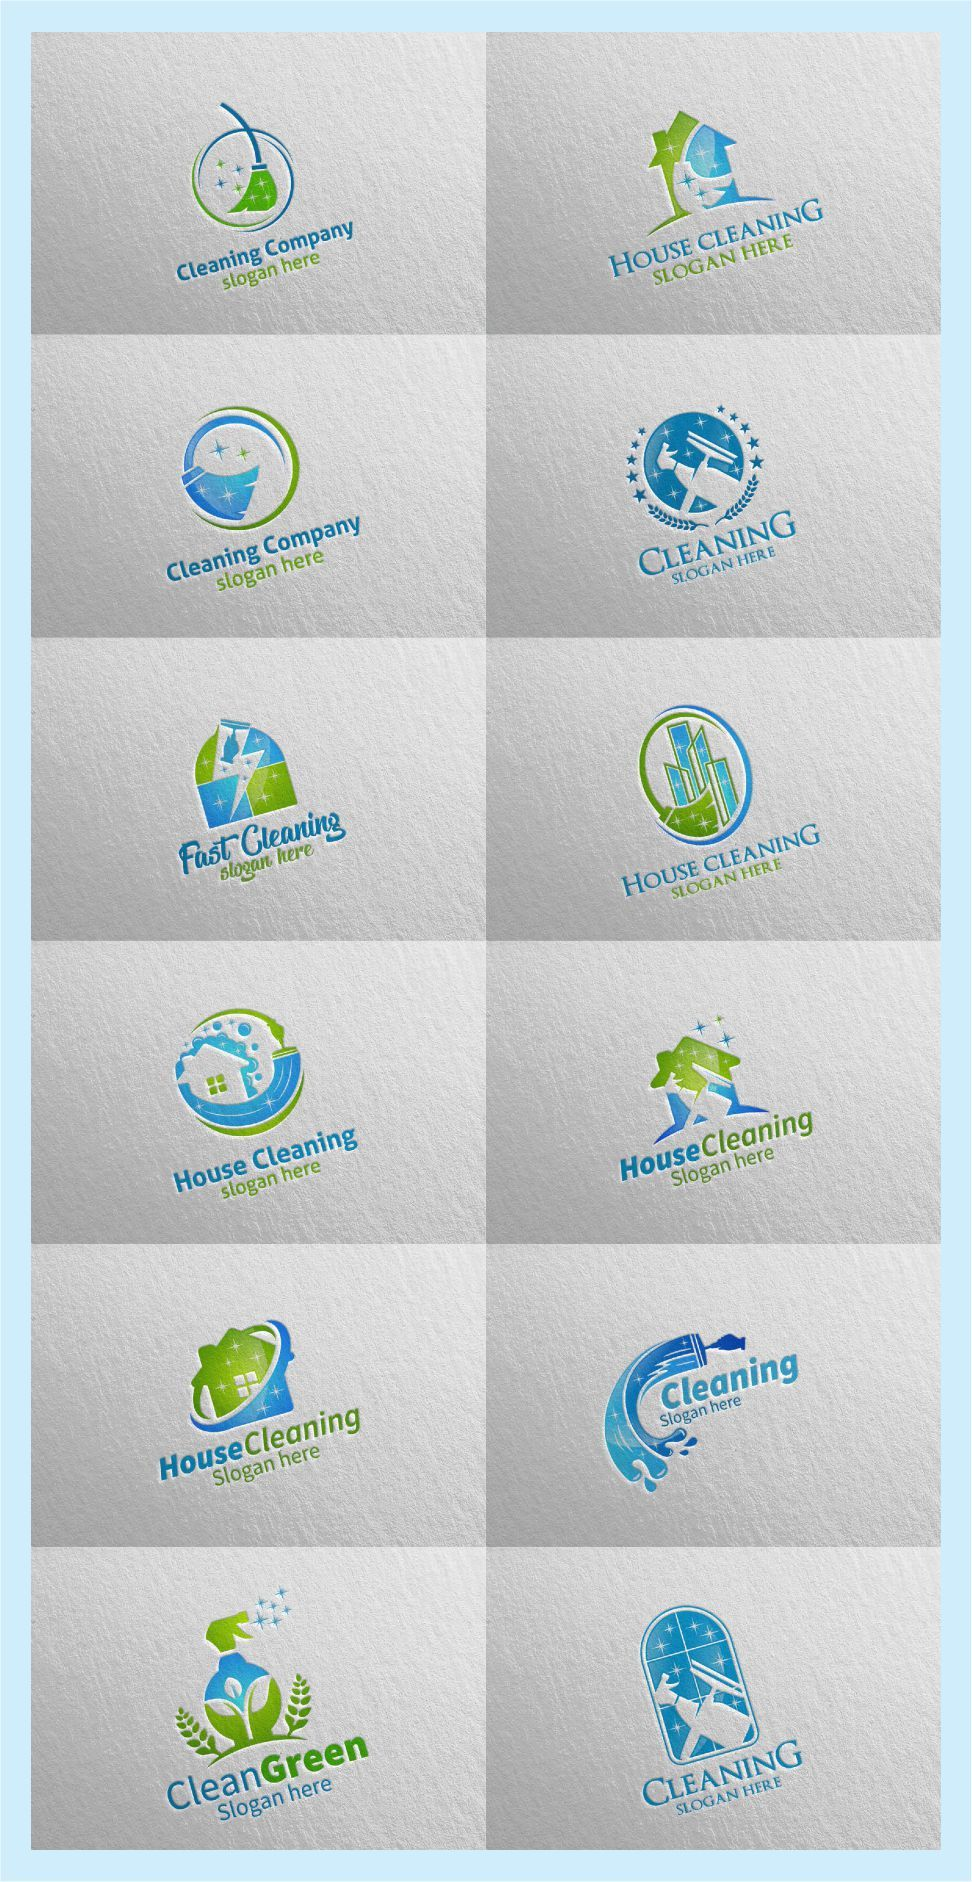 House Cleaning Service Logo Cleaning Service Logo Concept